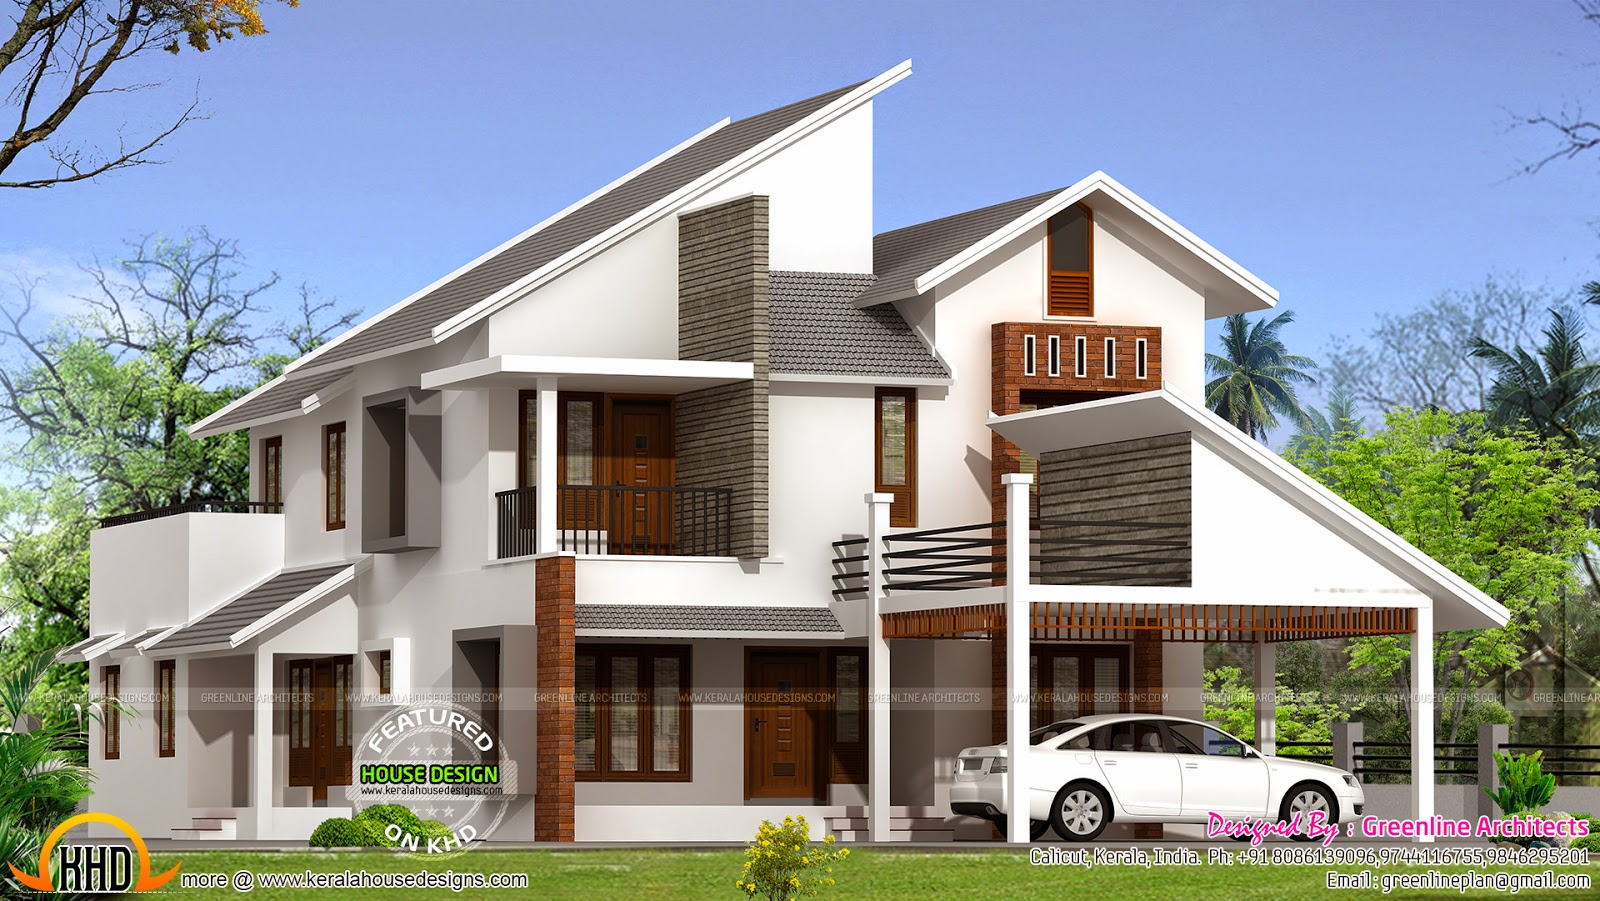 New modern house plan kerala home design and floor plans for Modern roof design types